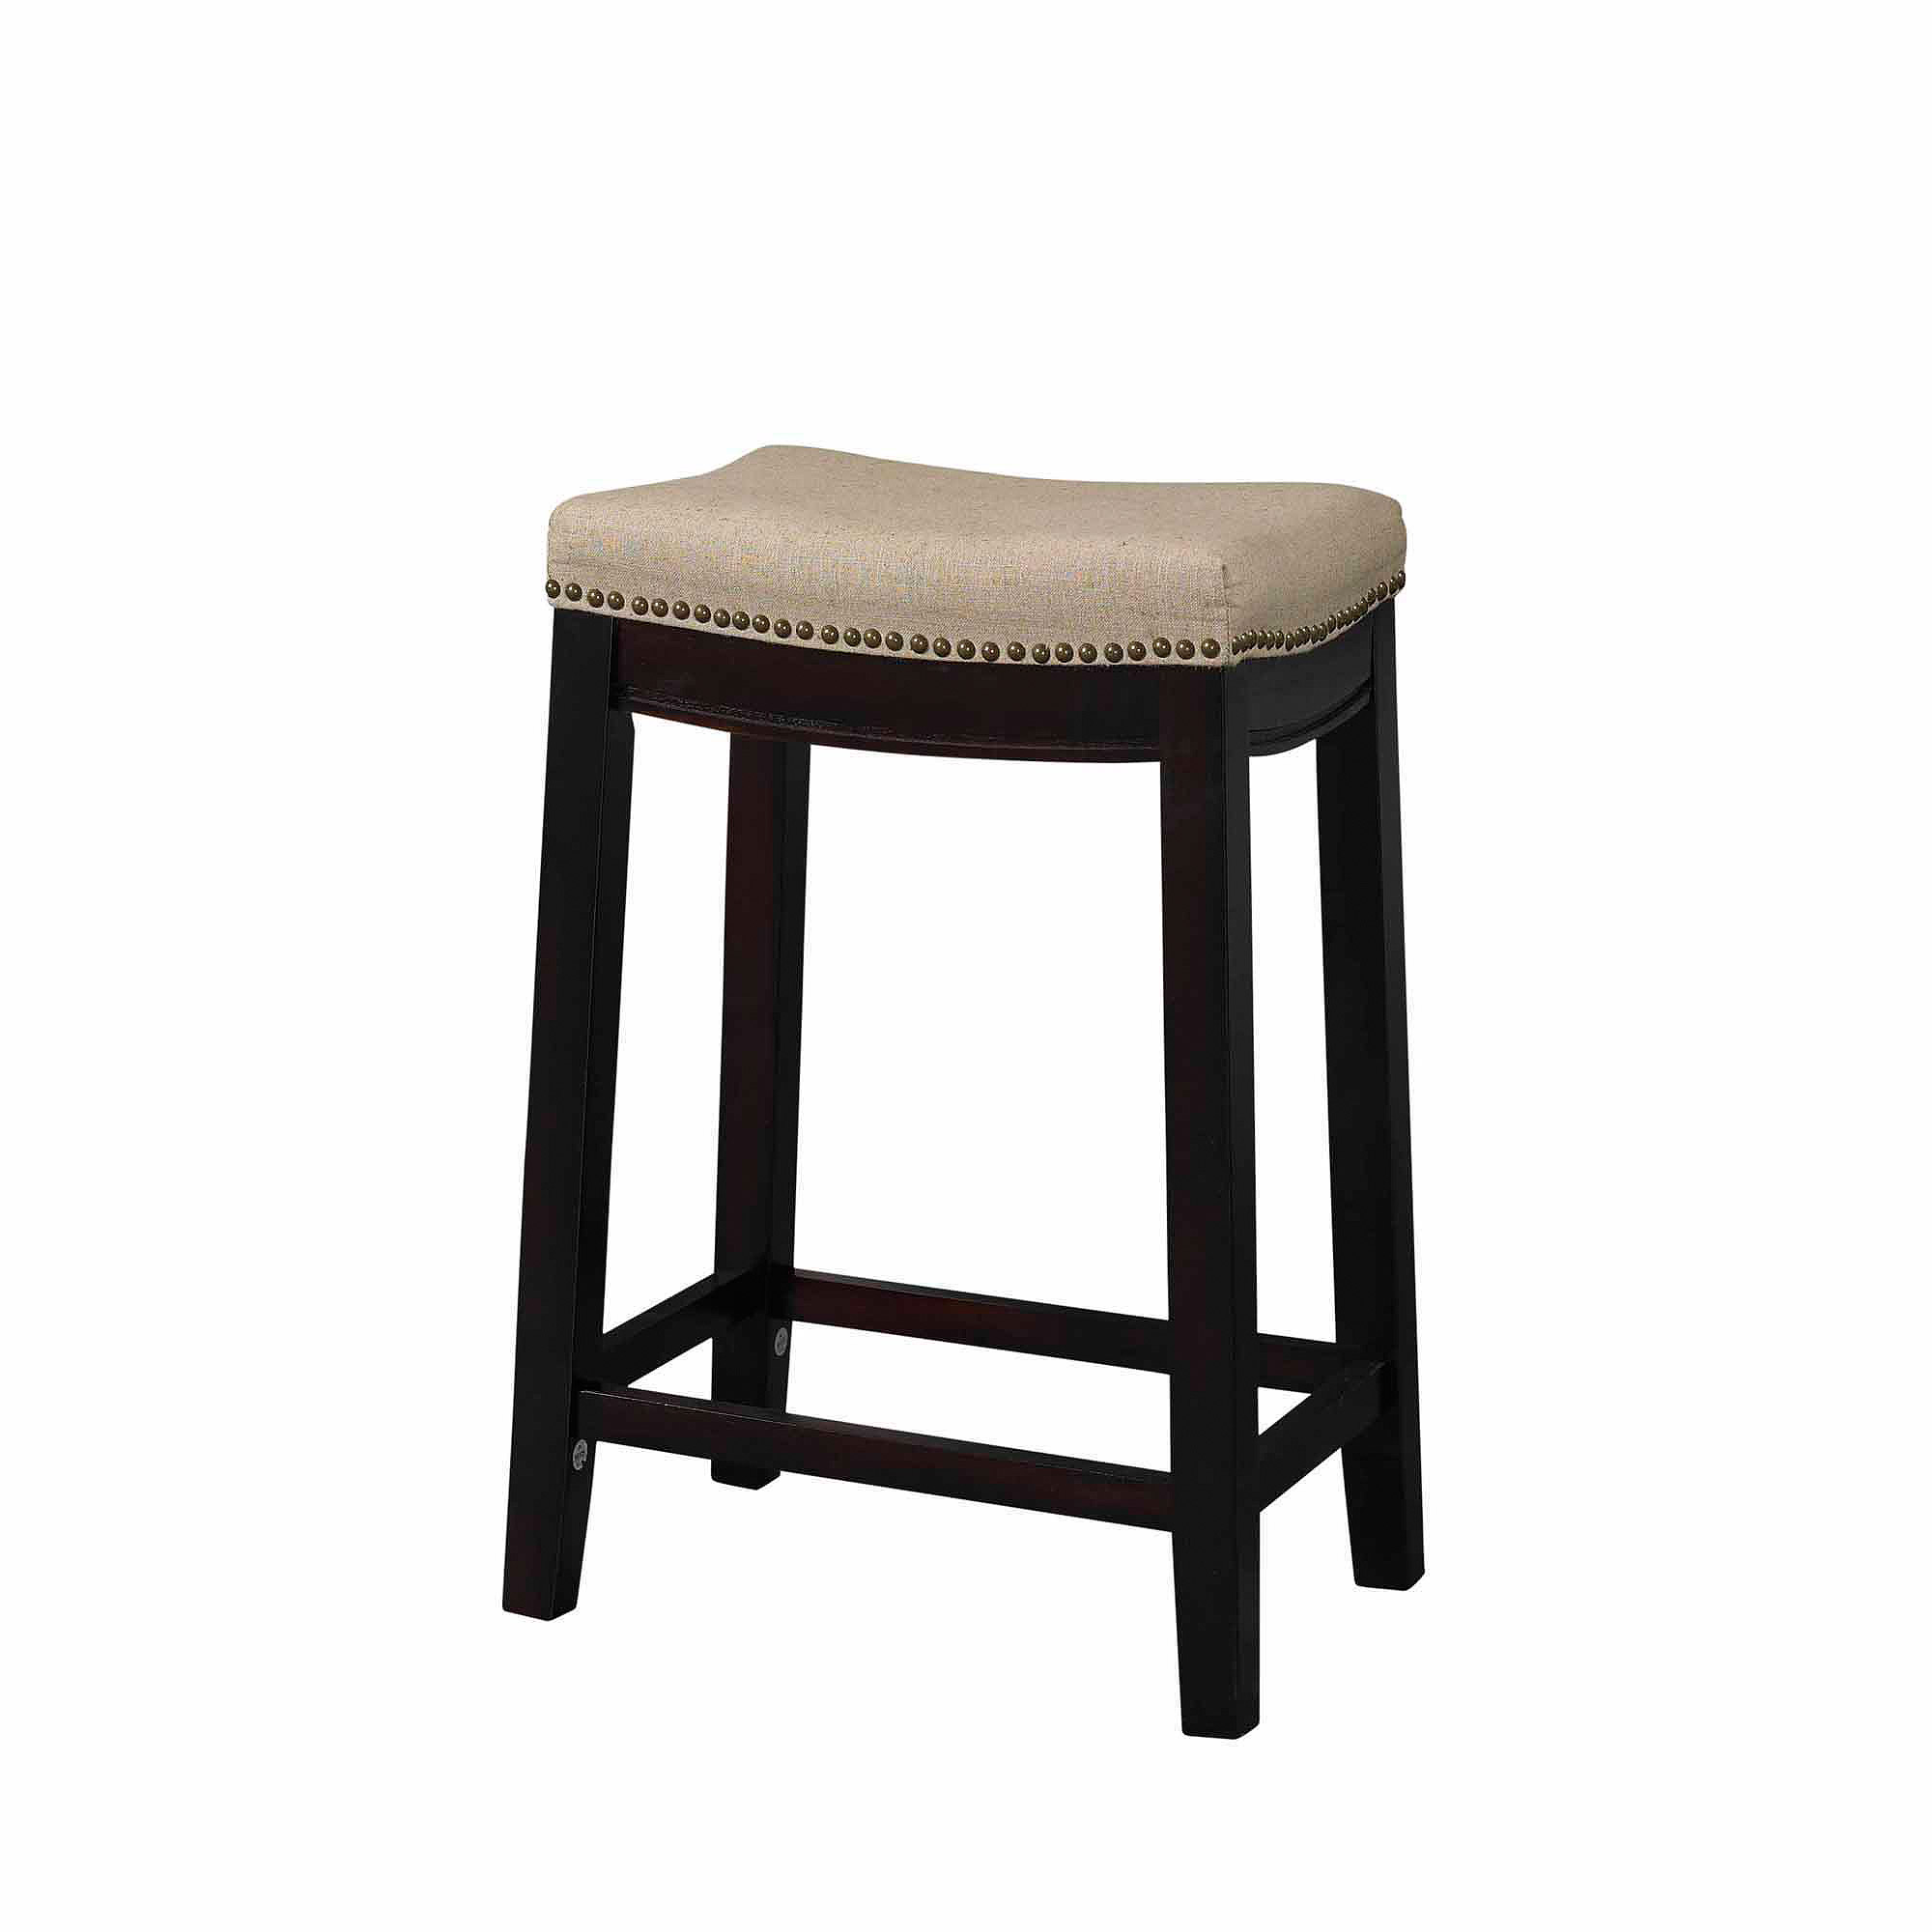 Linon Hampton Fabric Top Counter Stool Beige 24 Inch